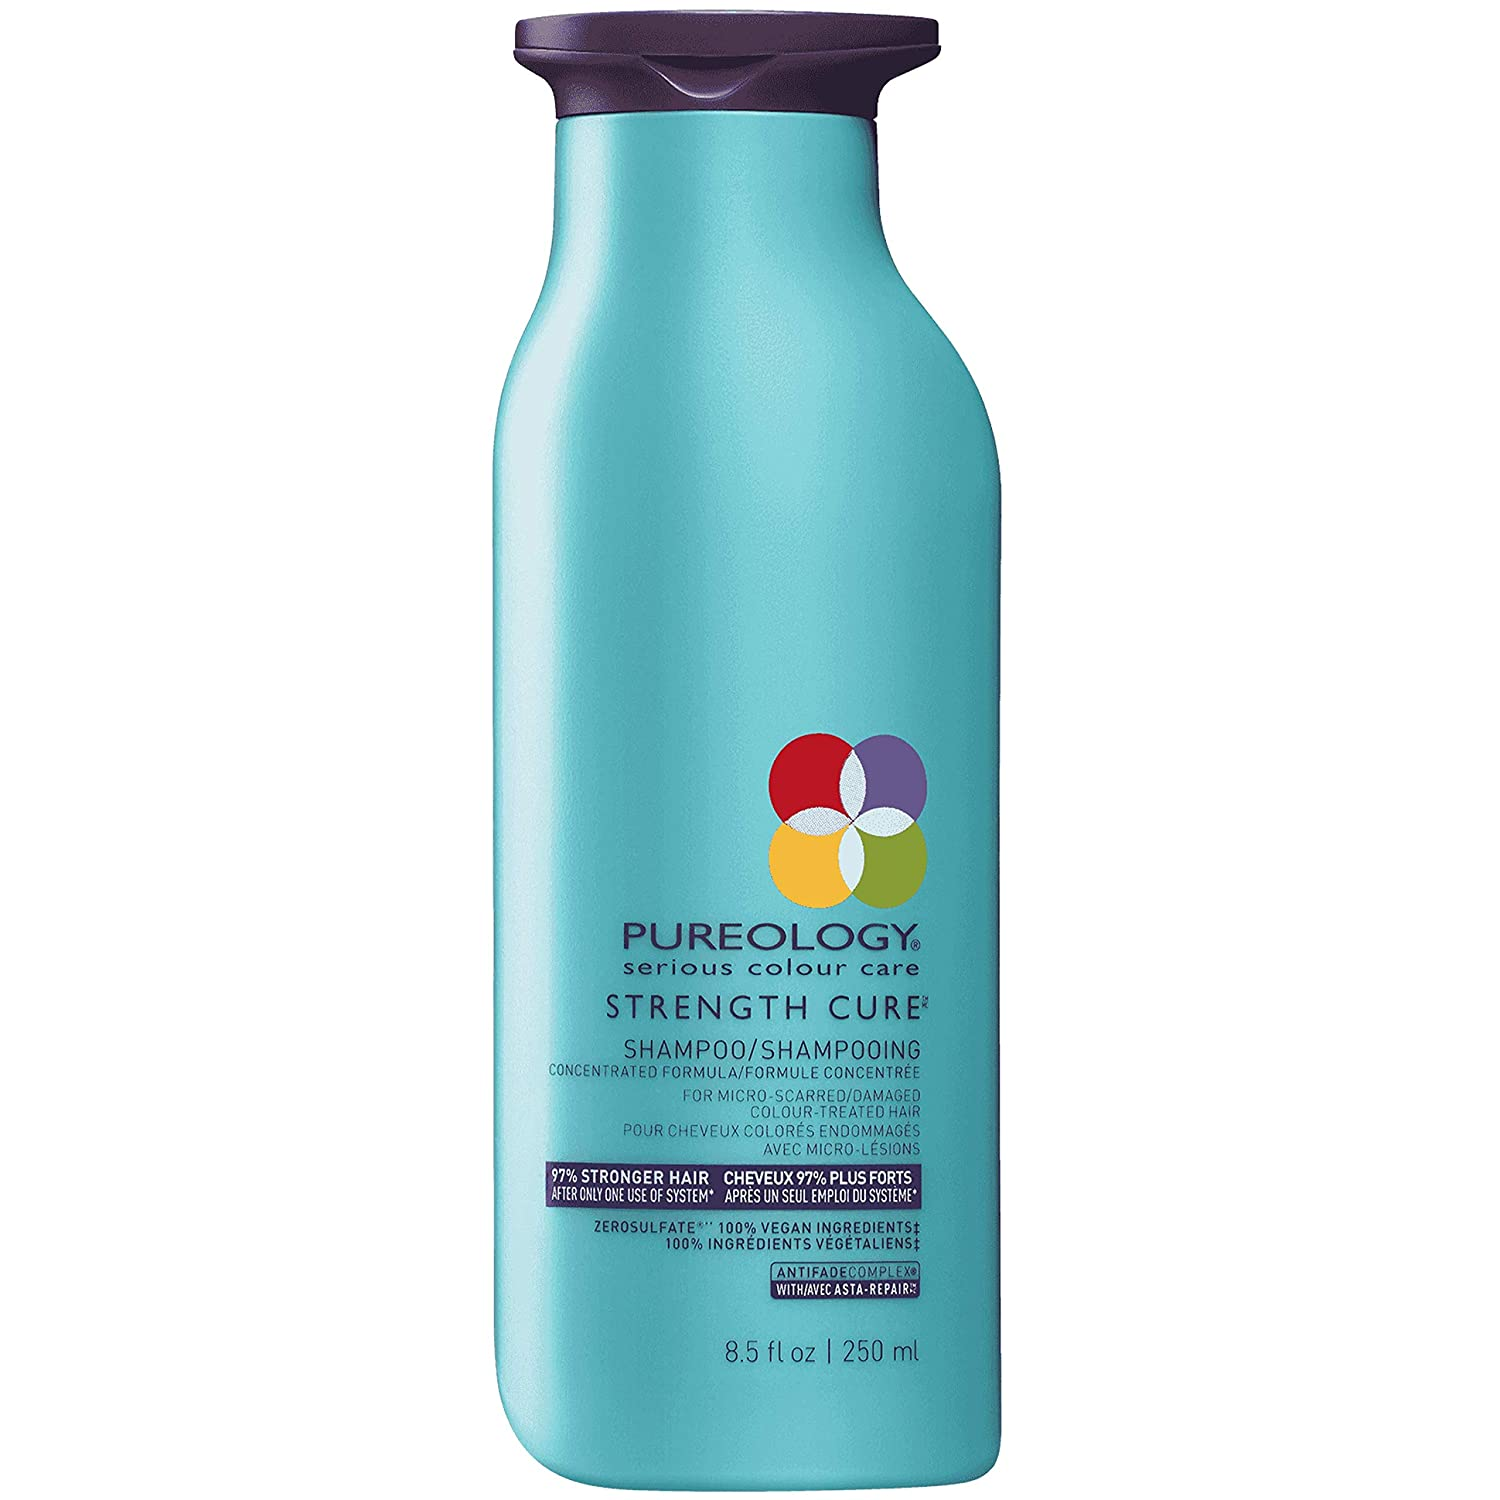 Pureology | Strength Cure Strengthening Shampoo | For Damaged, Color Treated Hair | Sulfate-Free | Vegan